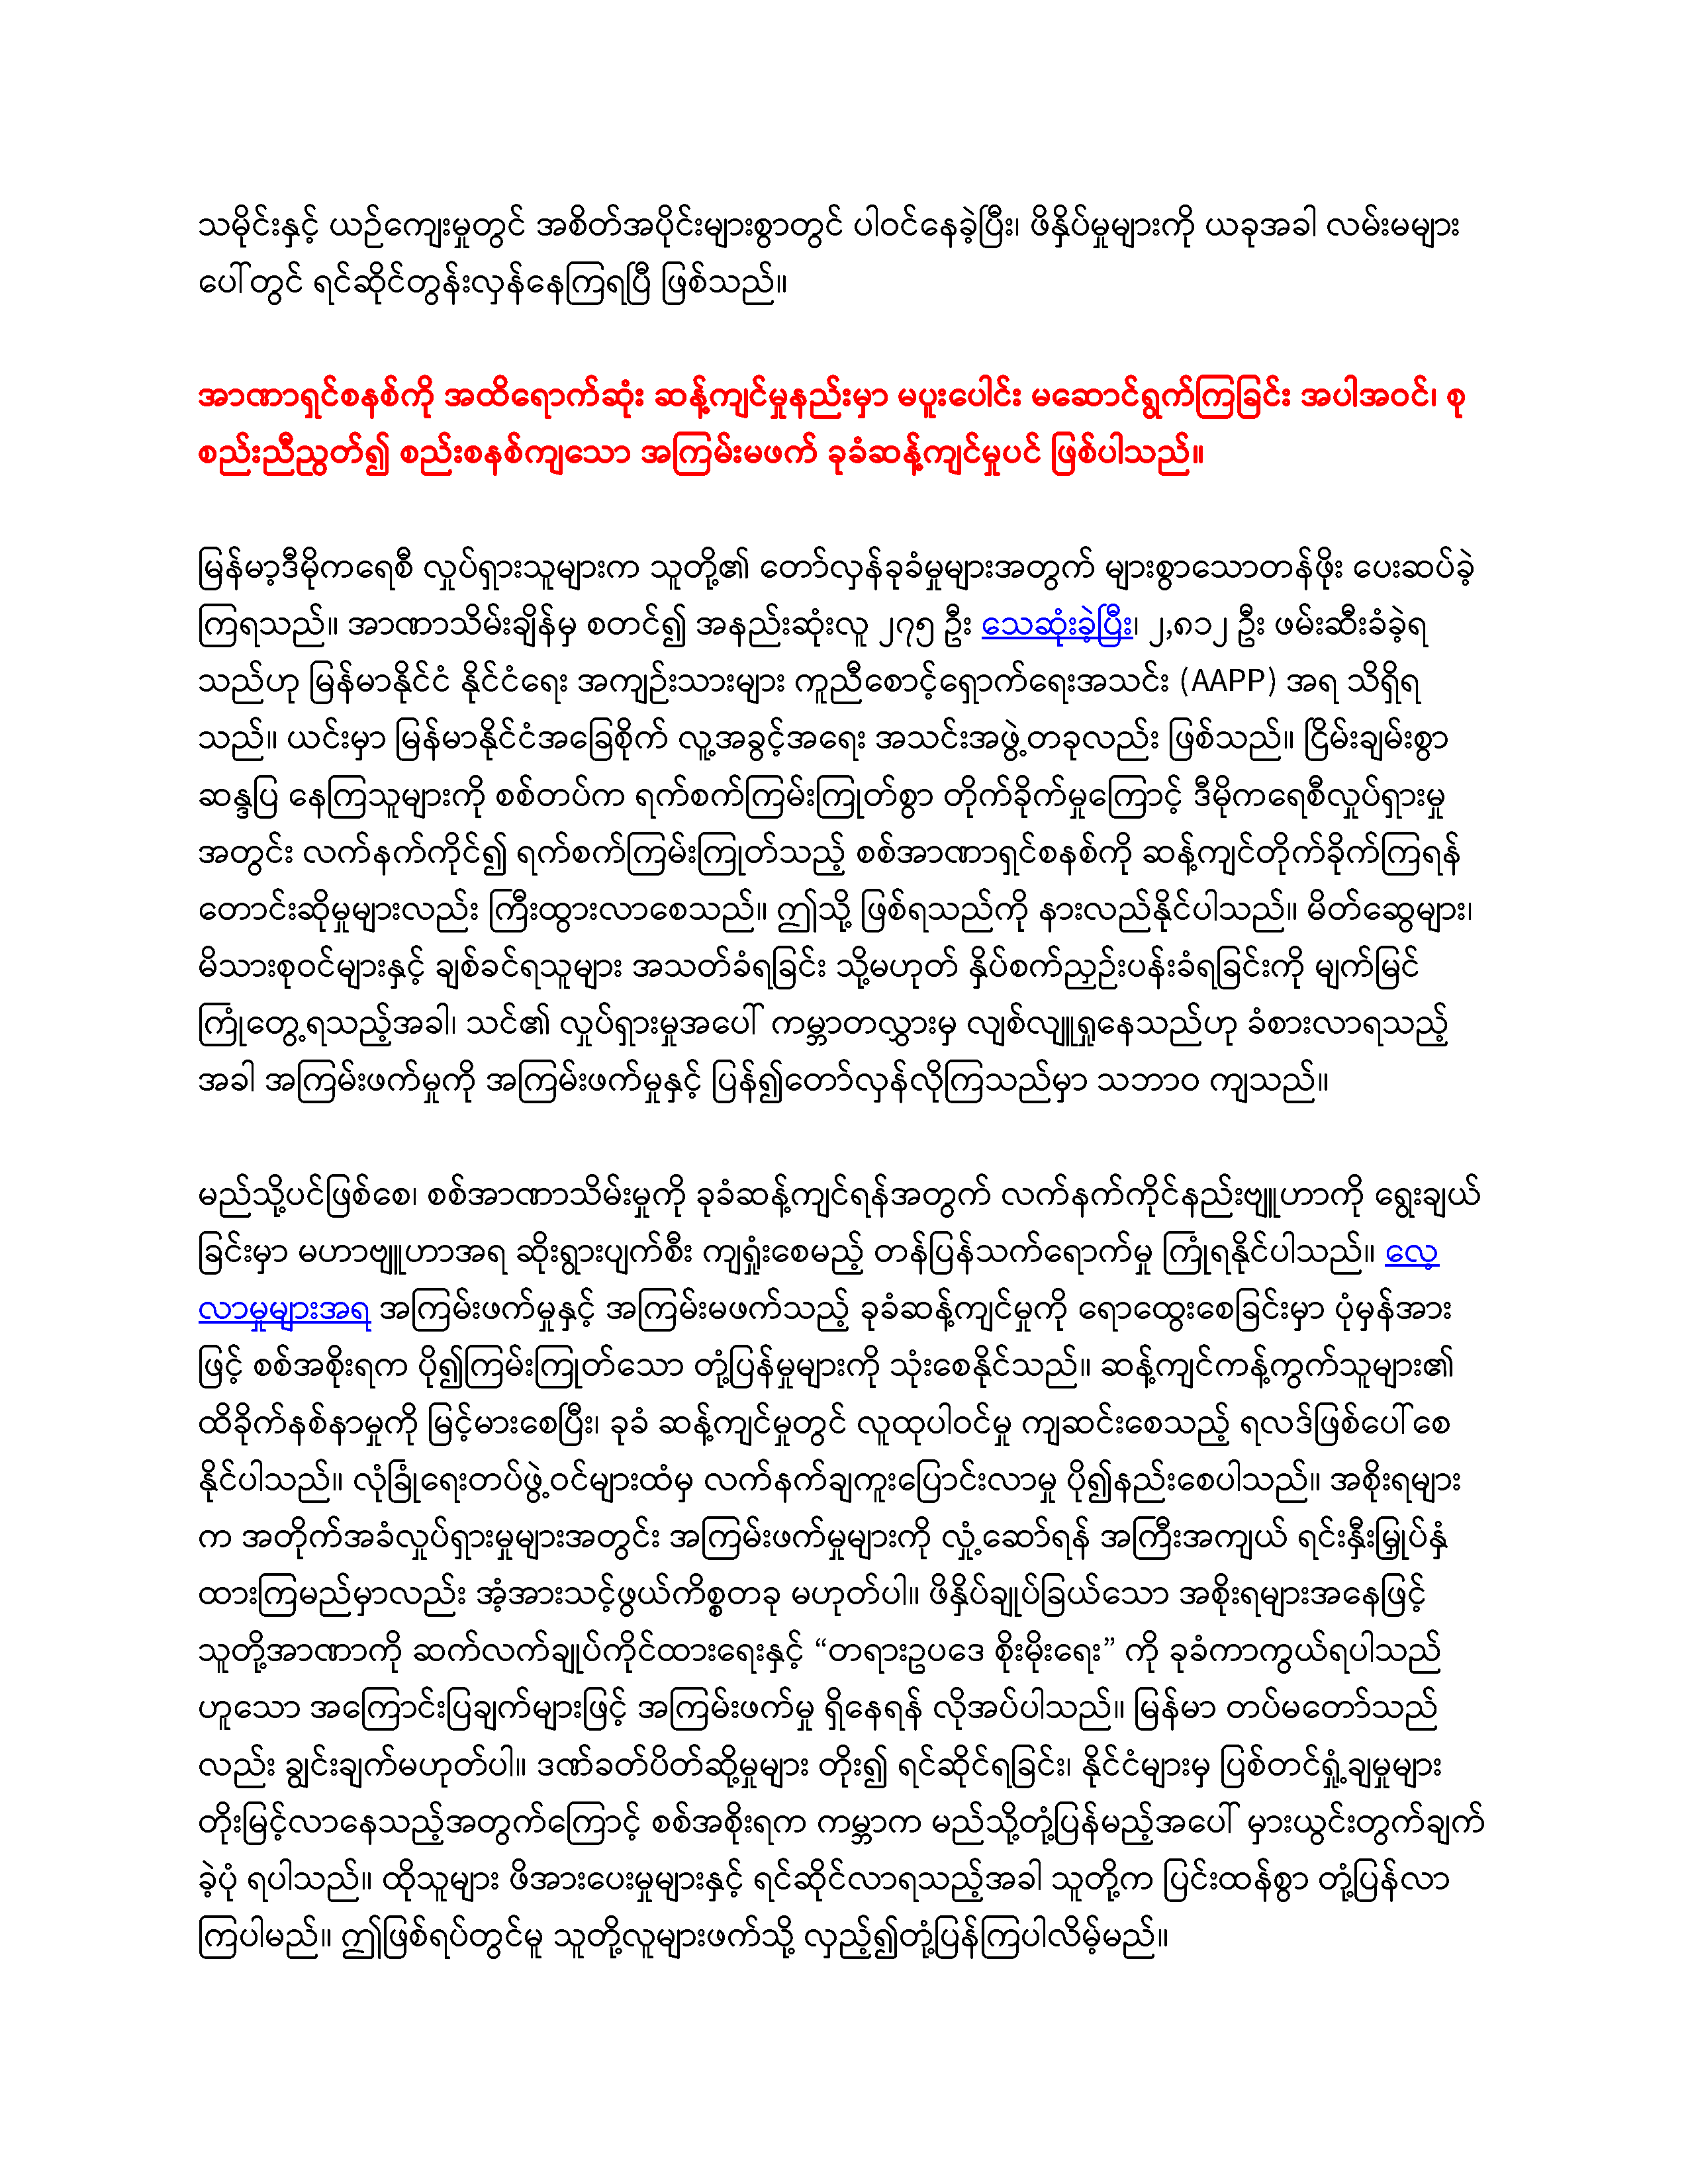 Myanmar's protesters have won significant victories. Now is the time to double the nonviolent resistance. (Burmese)